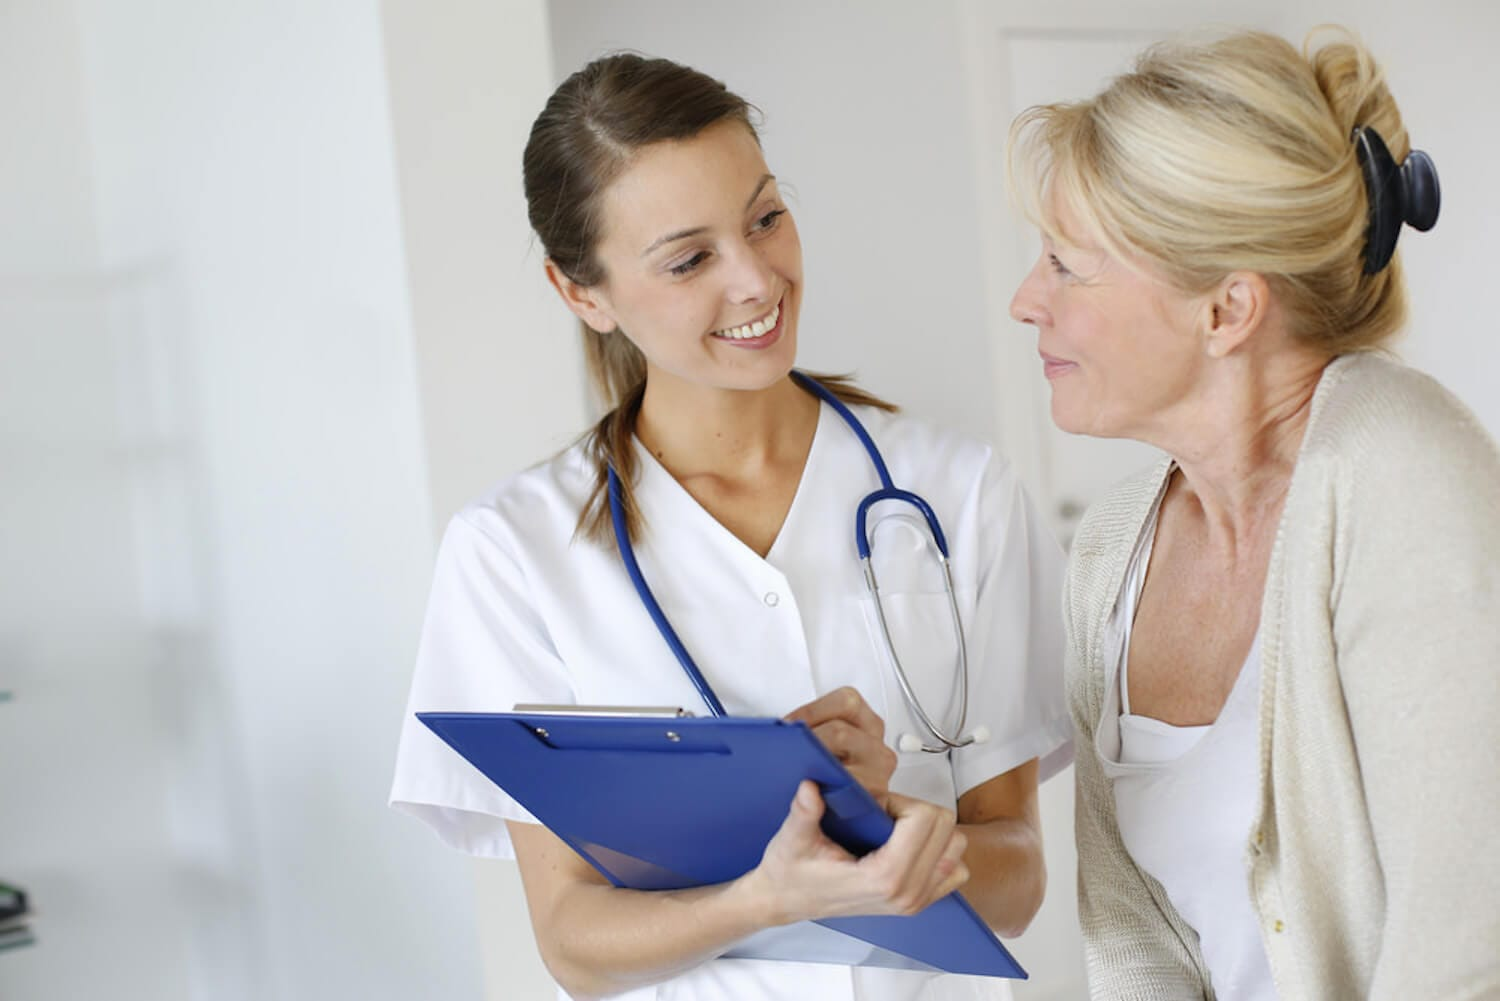 Qualifications and Eligibility to Take the Family Nurse Practitioner (FNP) Exam